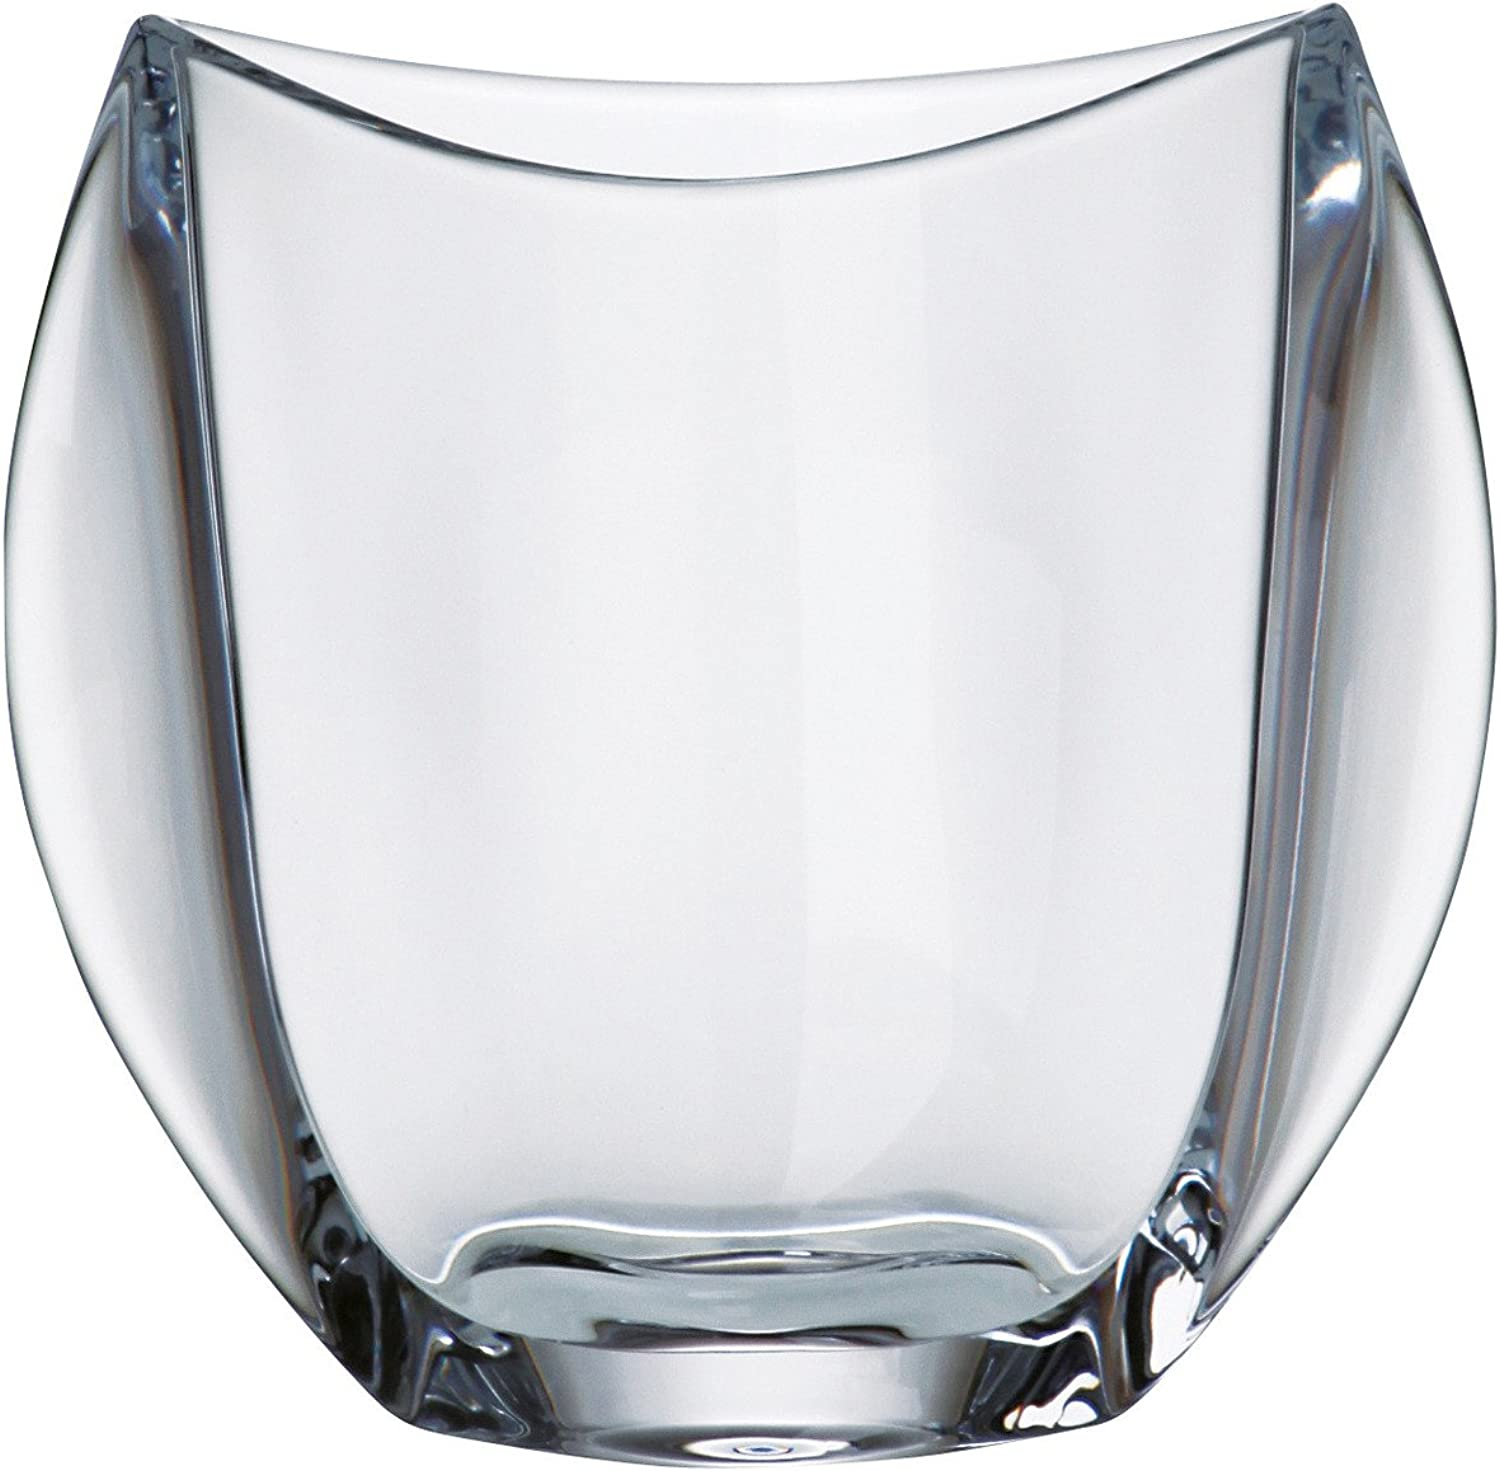 Barski - European Glass - Lead Free Crystalline - Oval Vase - 7   Height - Made in Europe